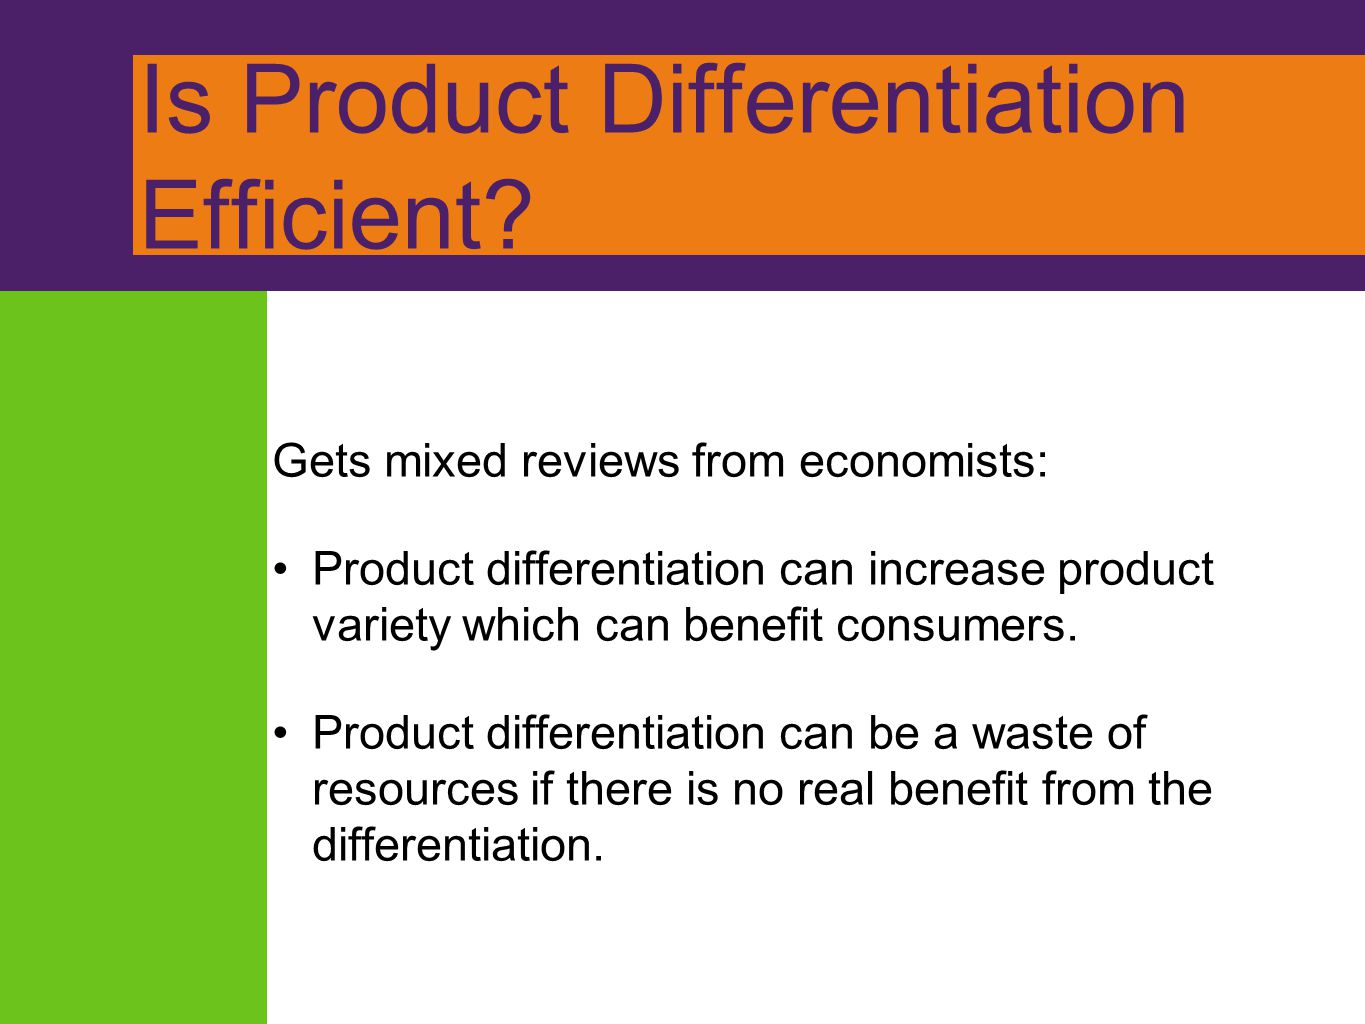 Is Product Differentiation Efficient? Gets mixed reviews from economists: Product differentiation can increase product variety which can benefit consu